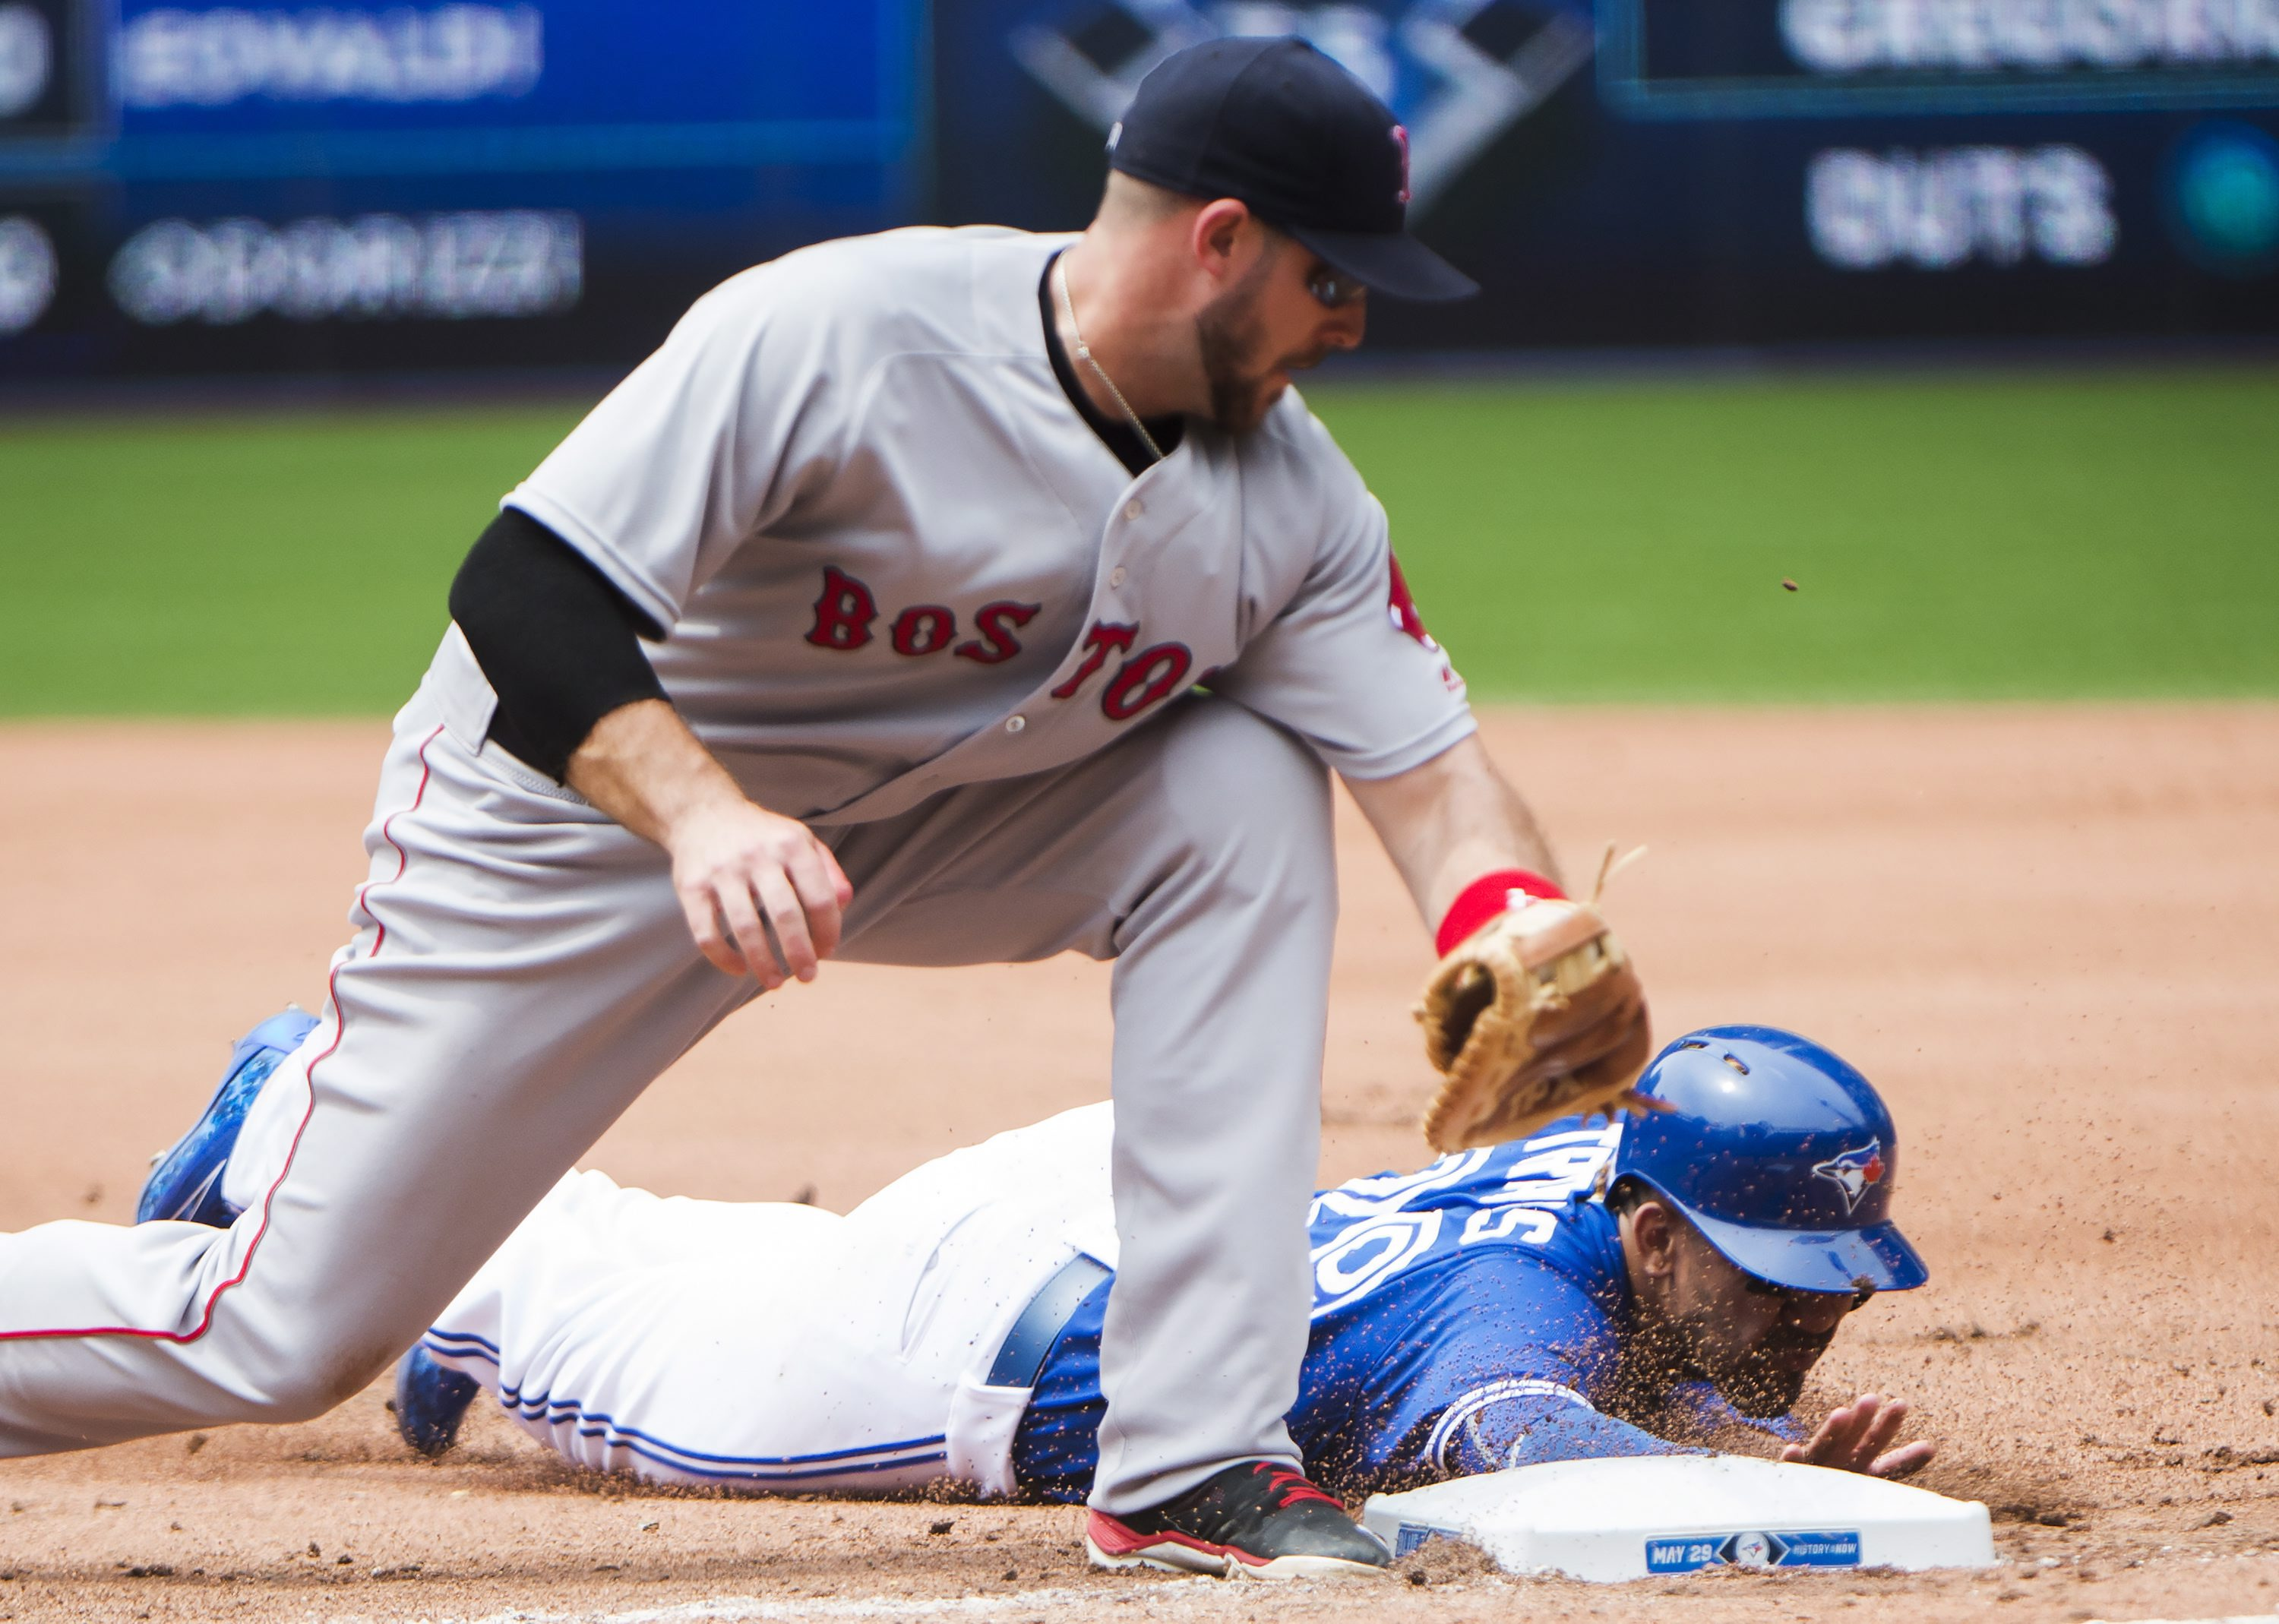 Toronto Blue Jays' Devon Travis (29) gets back to first base safely under the tag of Boston Red Sox first baseman Travis Shaw during fourth-inning baseball game action in Toronto on Sunday, May 29, 2016. (Nathan Denette/The Canadian Press via AP) MANDATOR